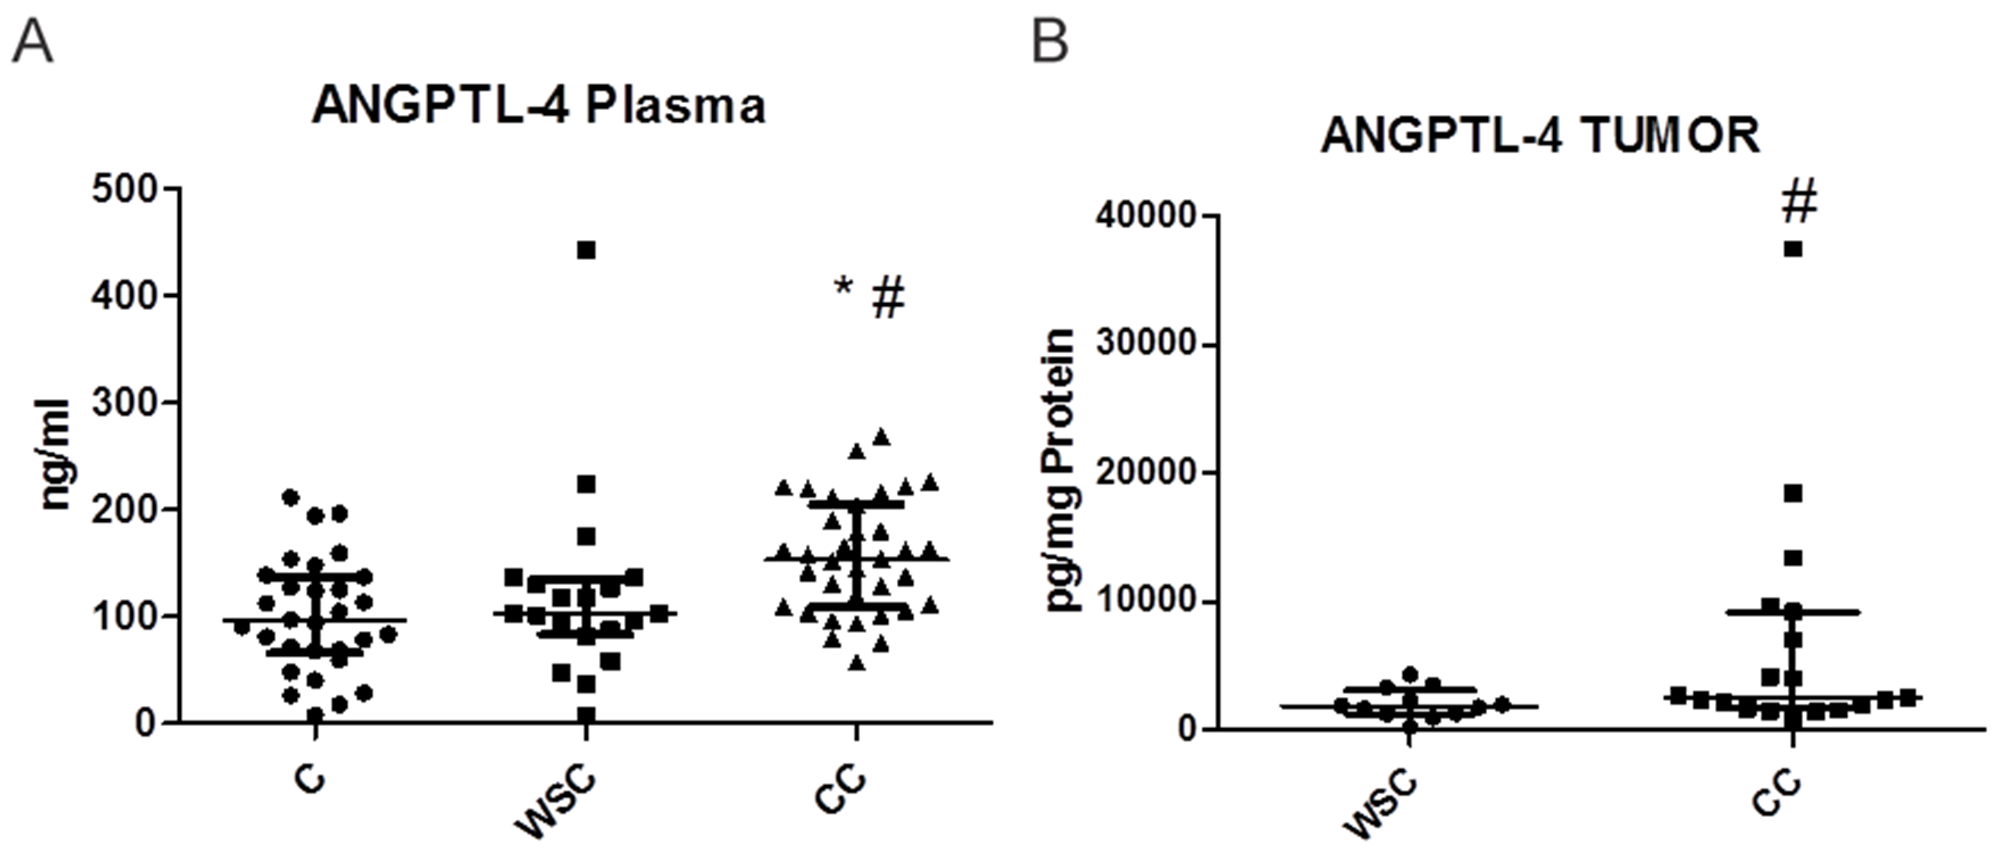 Dot plot (median wich interquartile range) representing plasma (ng/mL- A) and tumor (pg/mg of protein- B) ANGPTL-4 concentration in each patient.